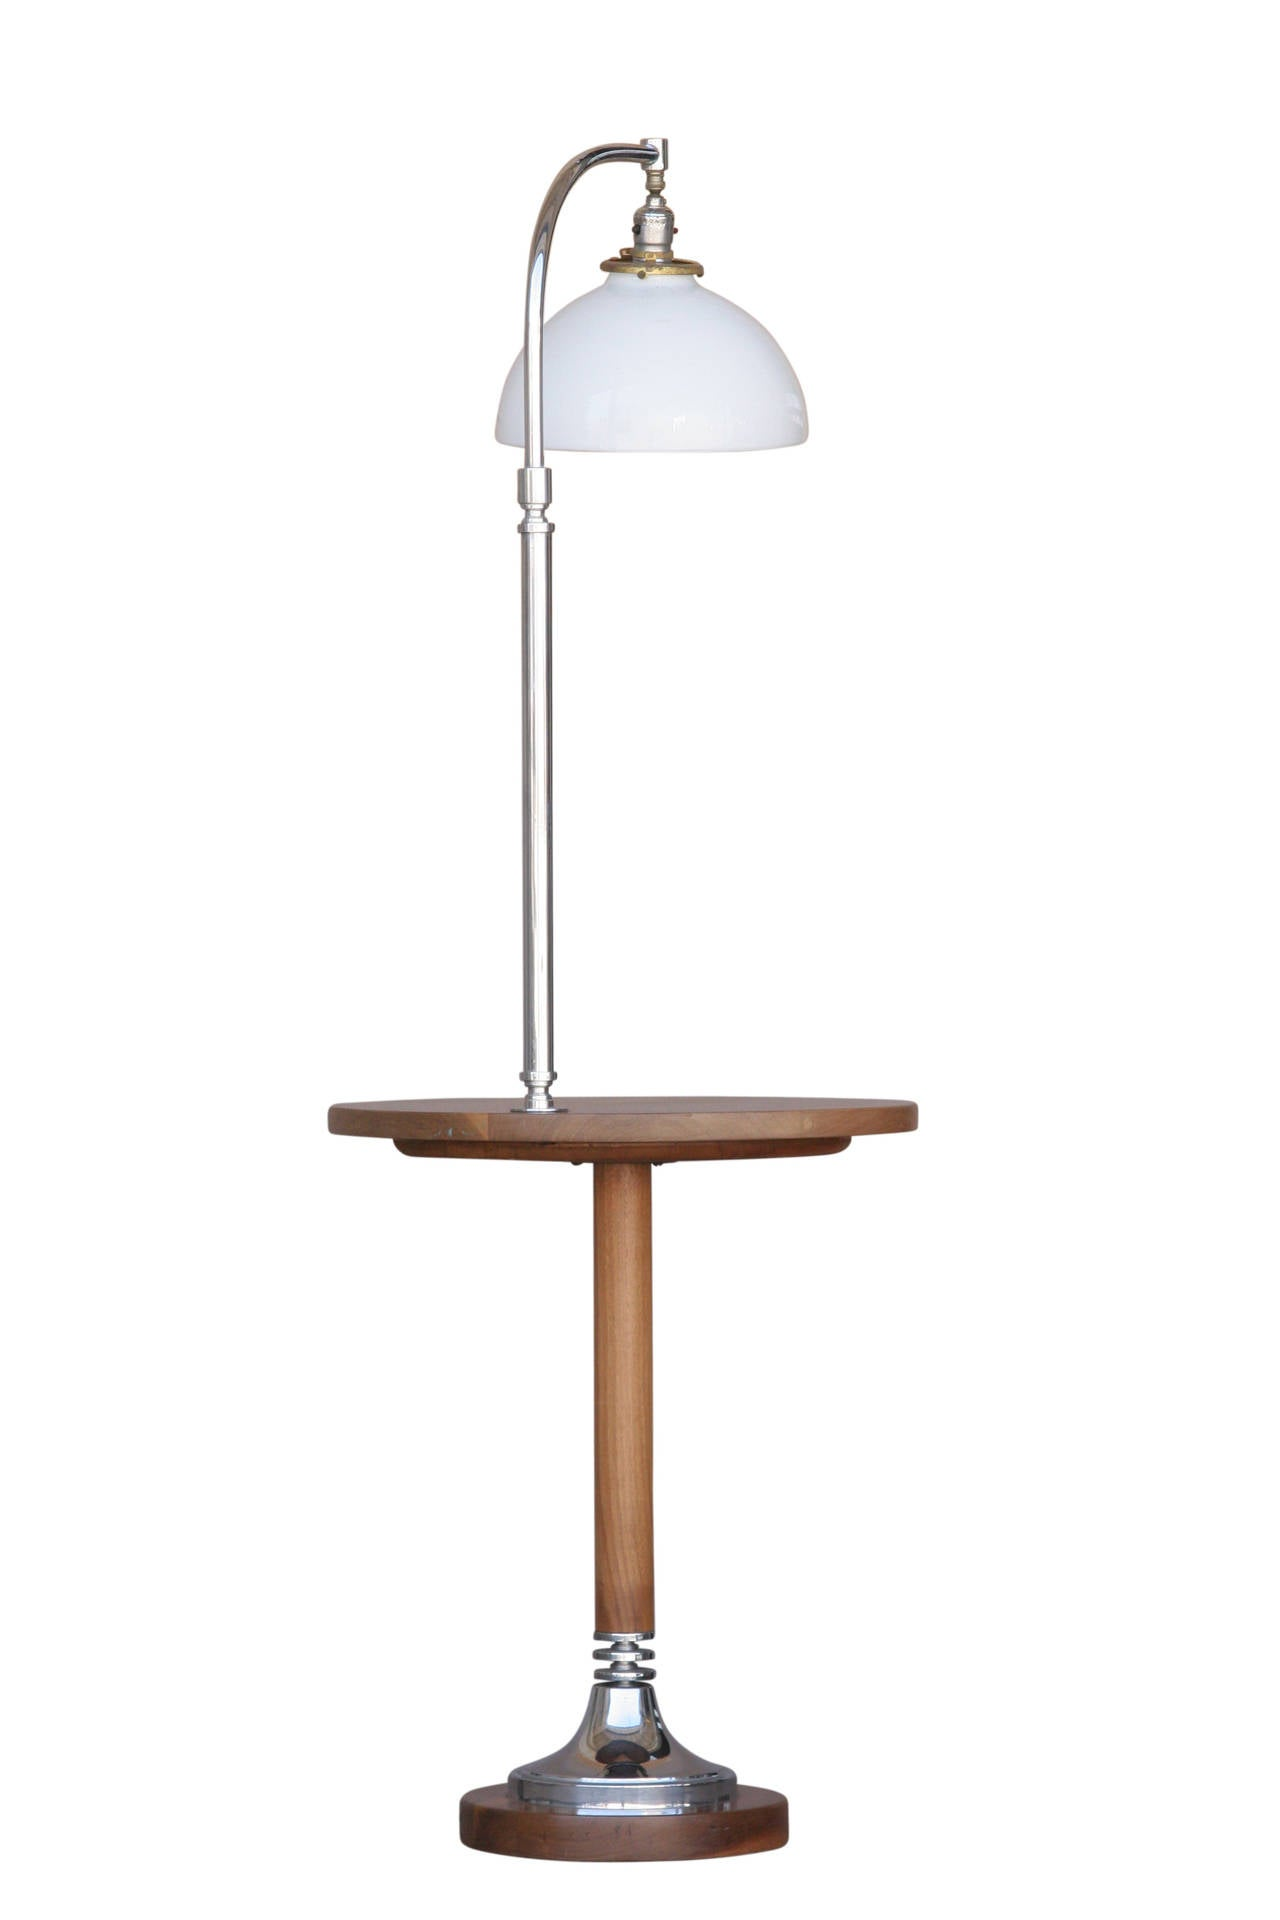 Circa 1930 streamline side table floor lamp at 1stdibs for Floor lamp with table